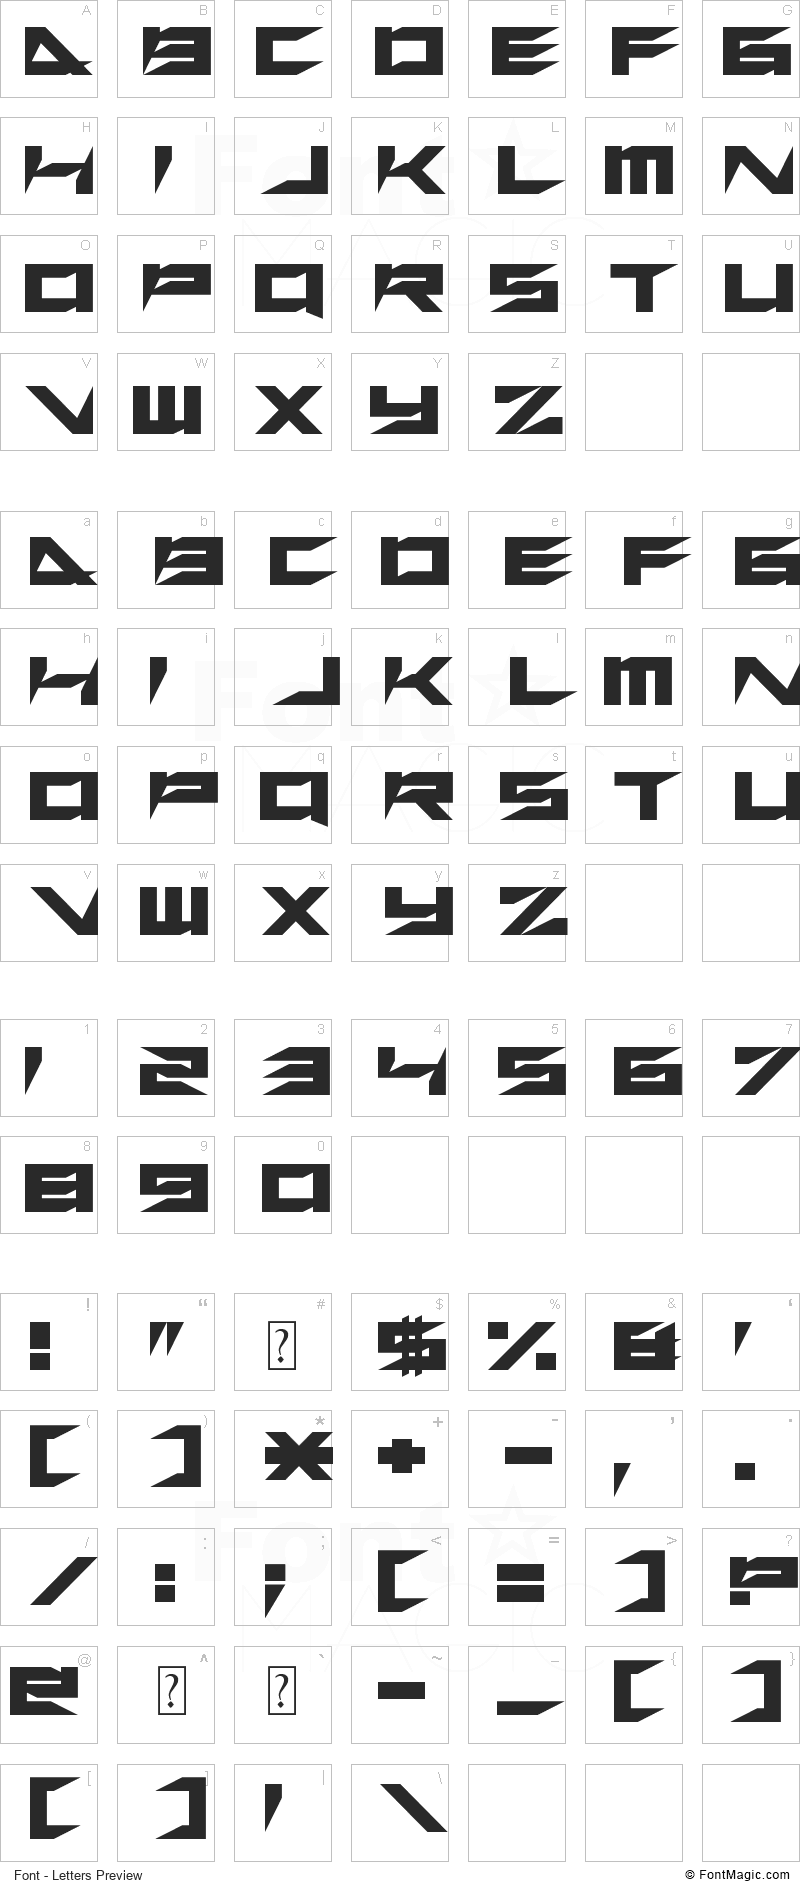 Xero's Retreat Font - All Latters Preview Chart